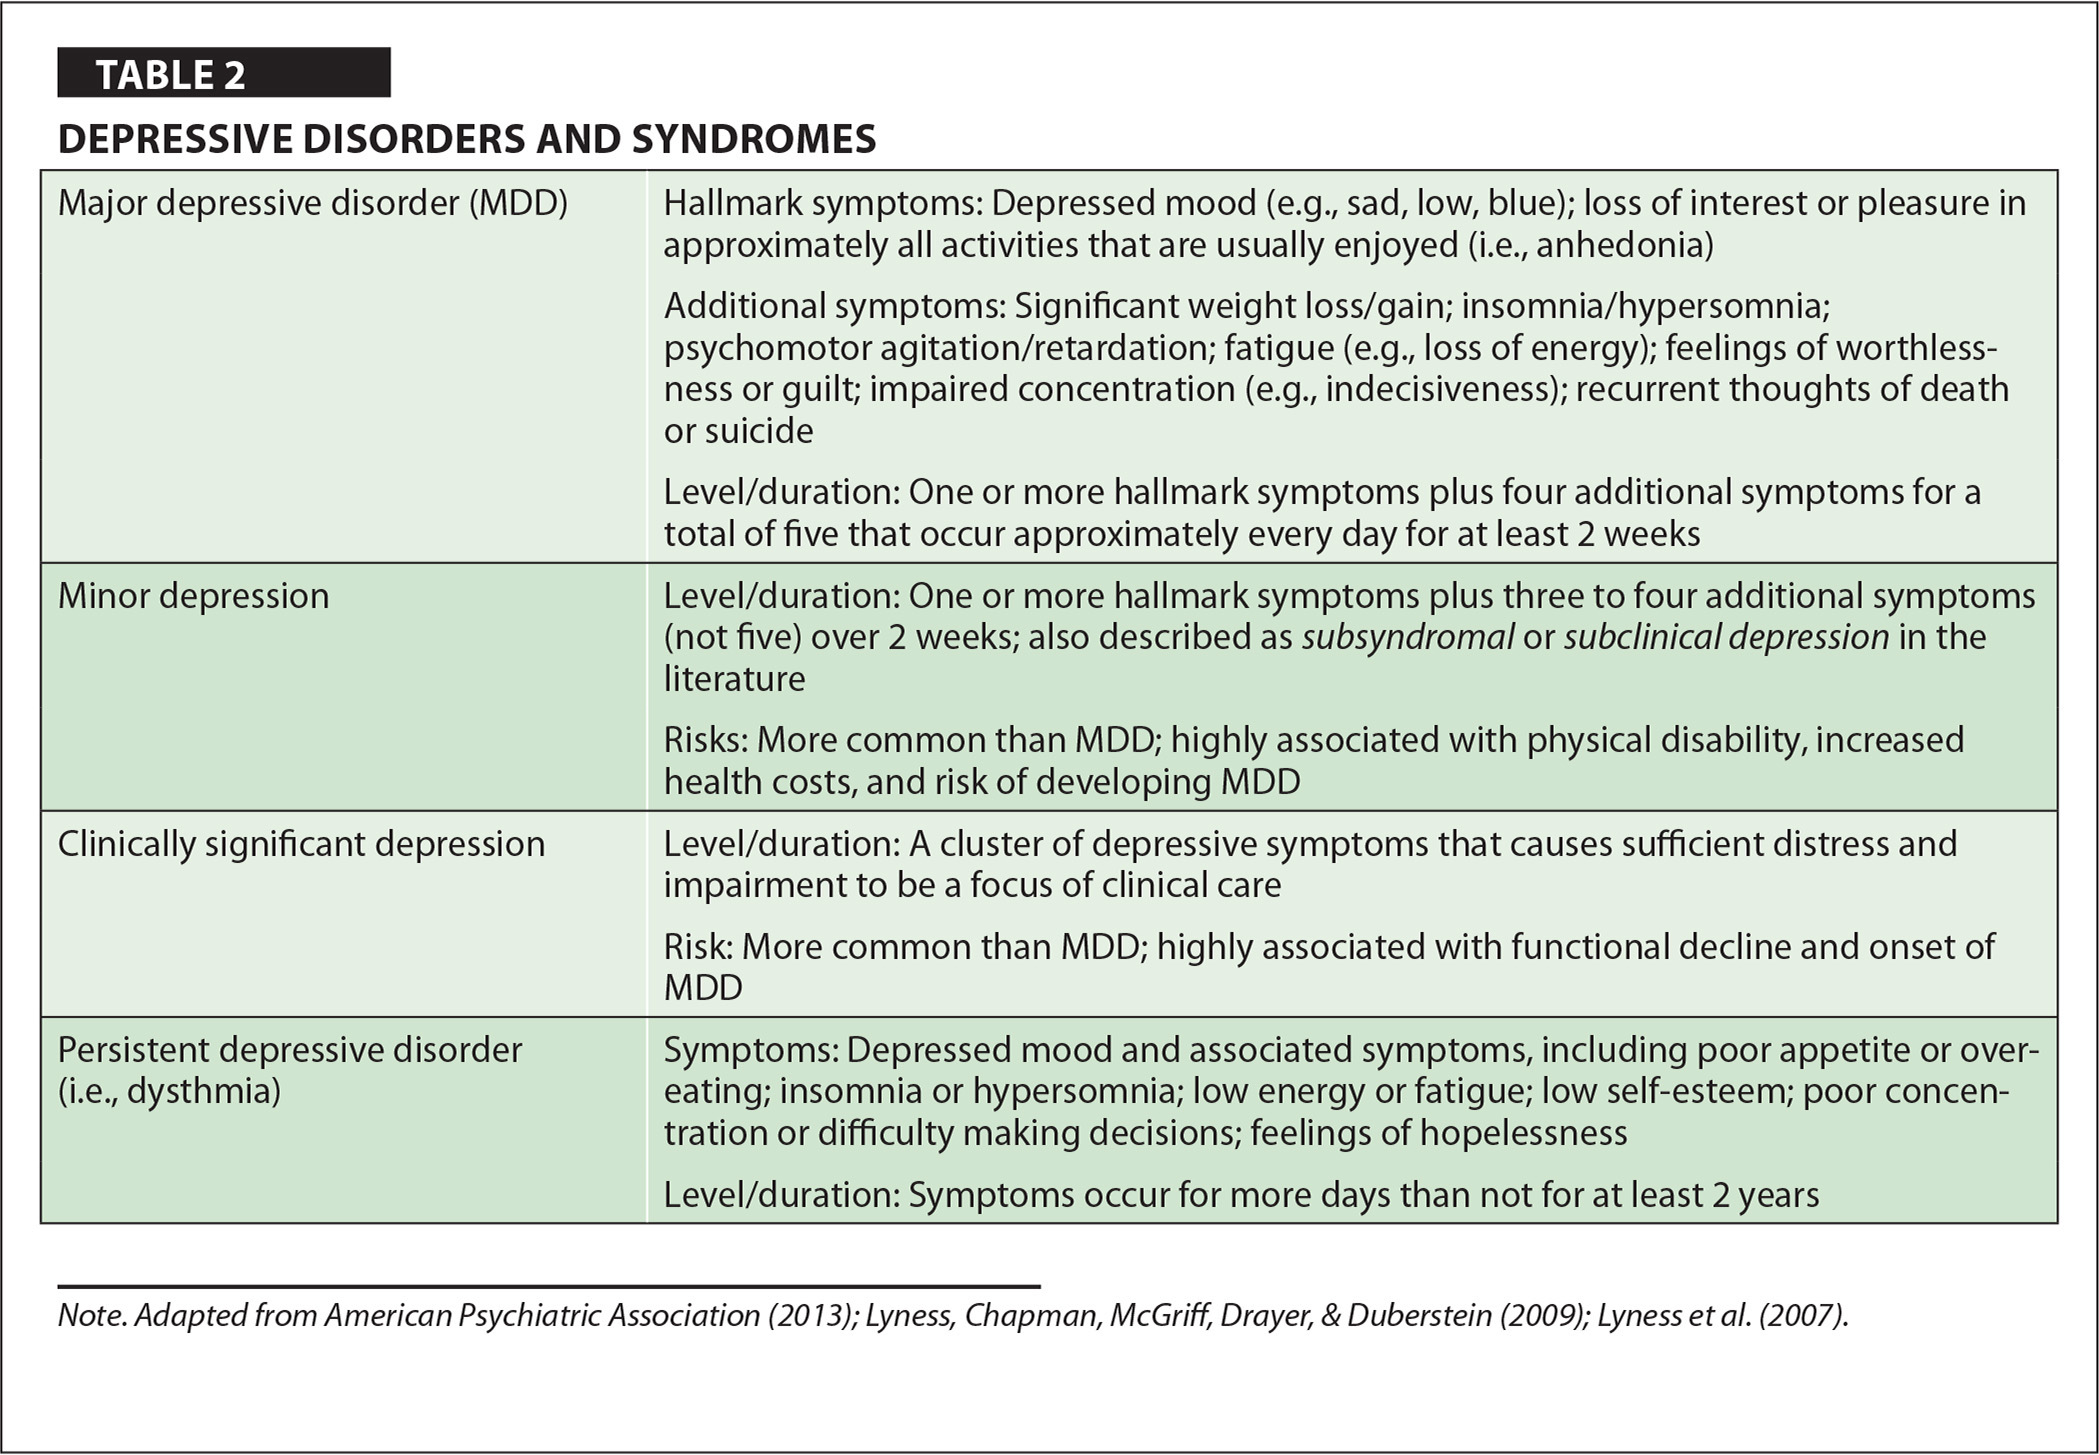 Depressive Disorders and Syndromes